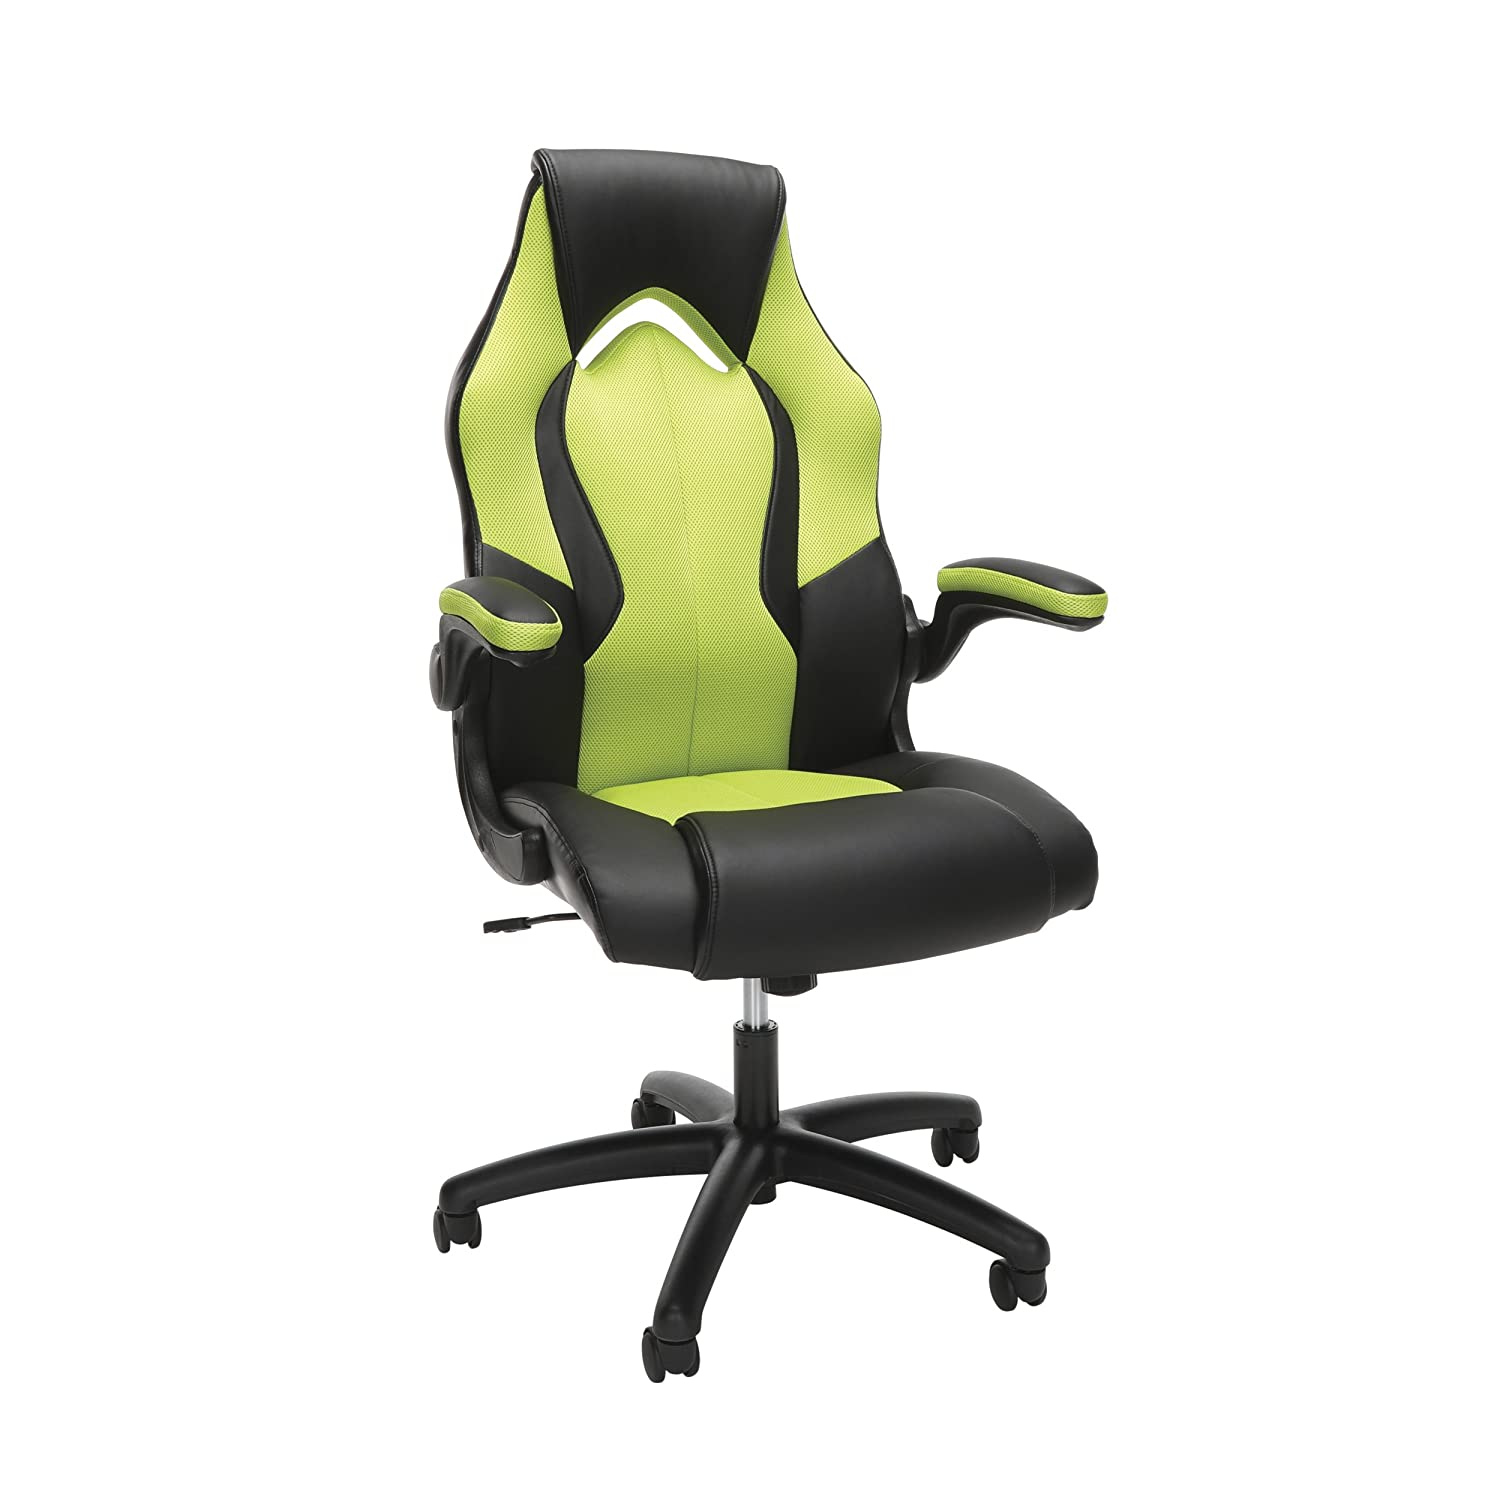 OFM Essentials Collection High-Back Racing Style Bonded Leather Gaming Chair, in Green ESS-3086-GRN